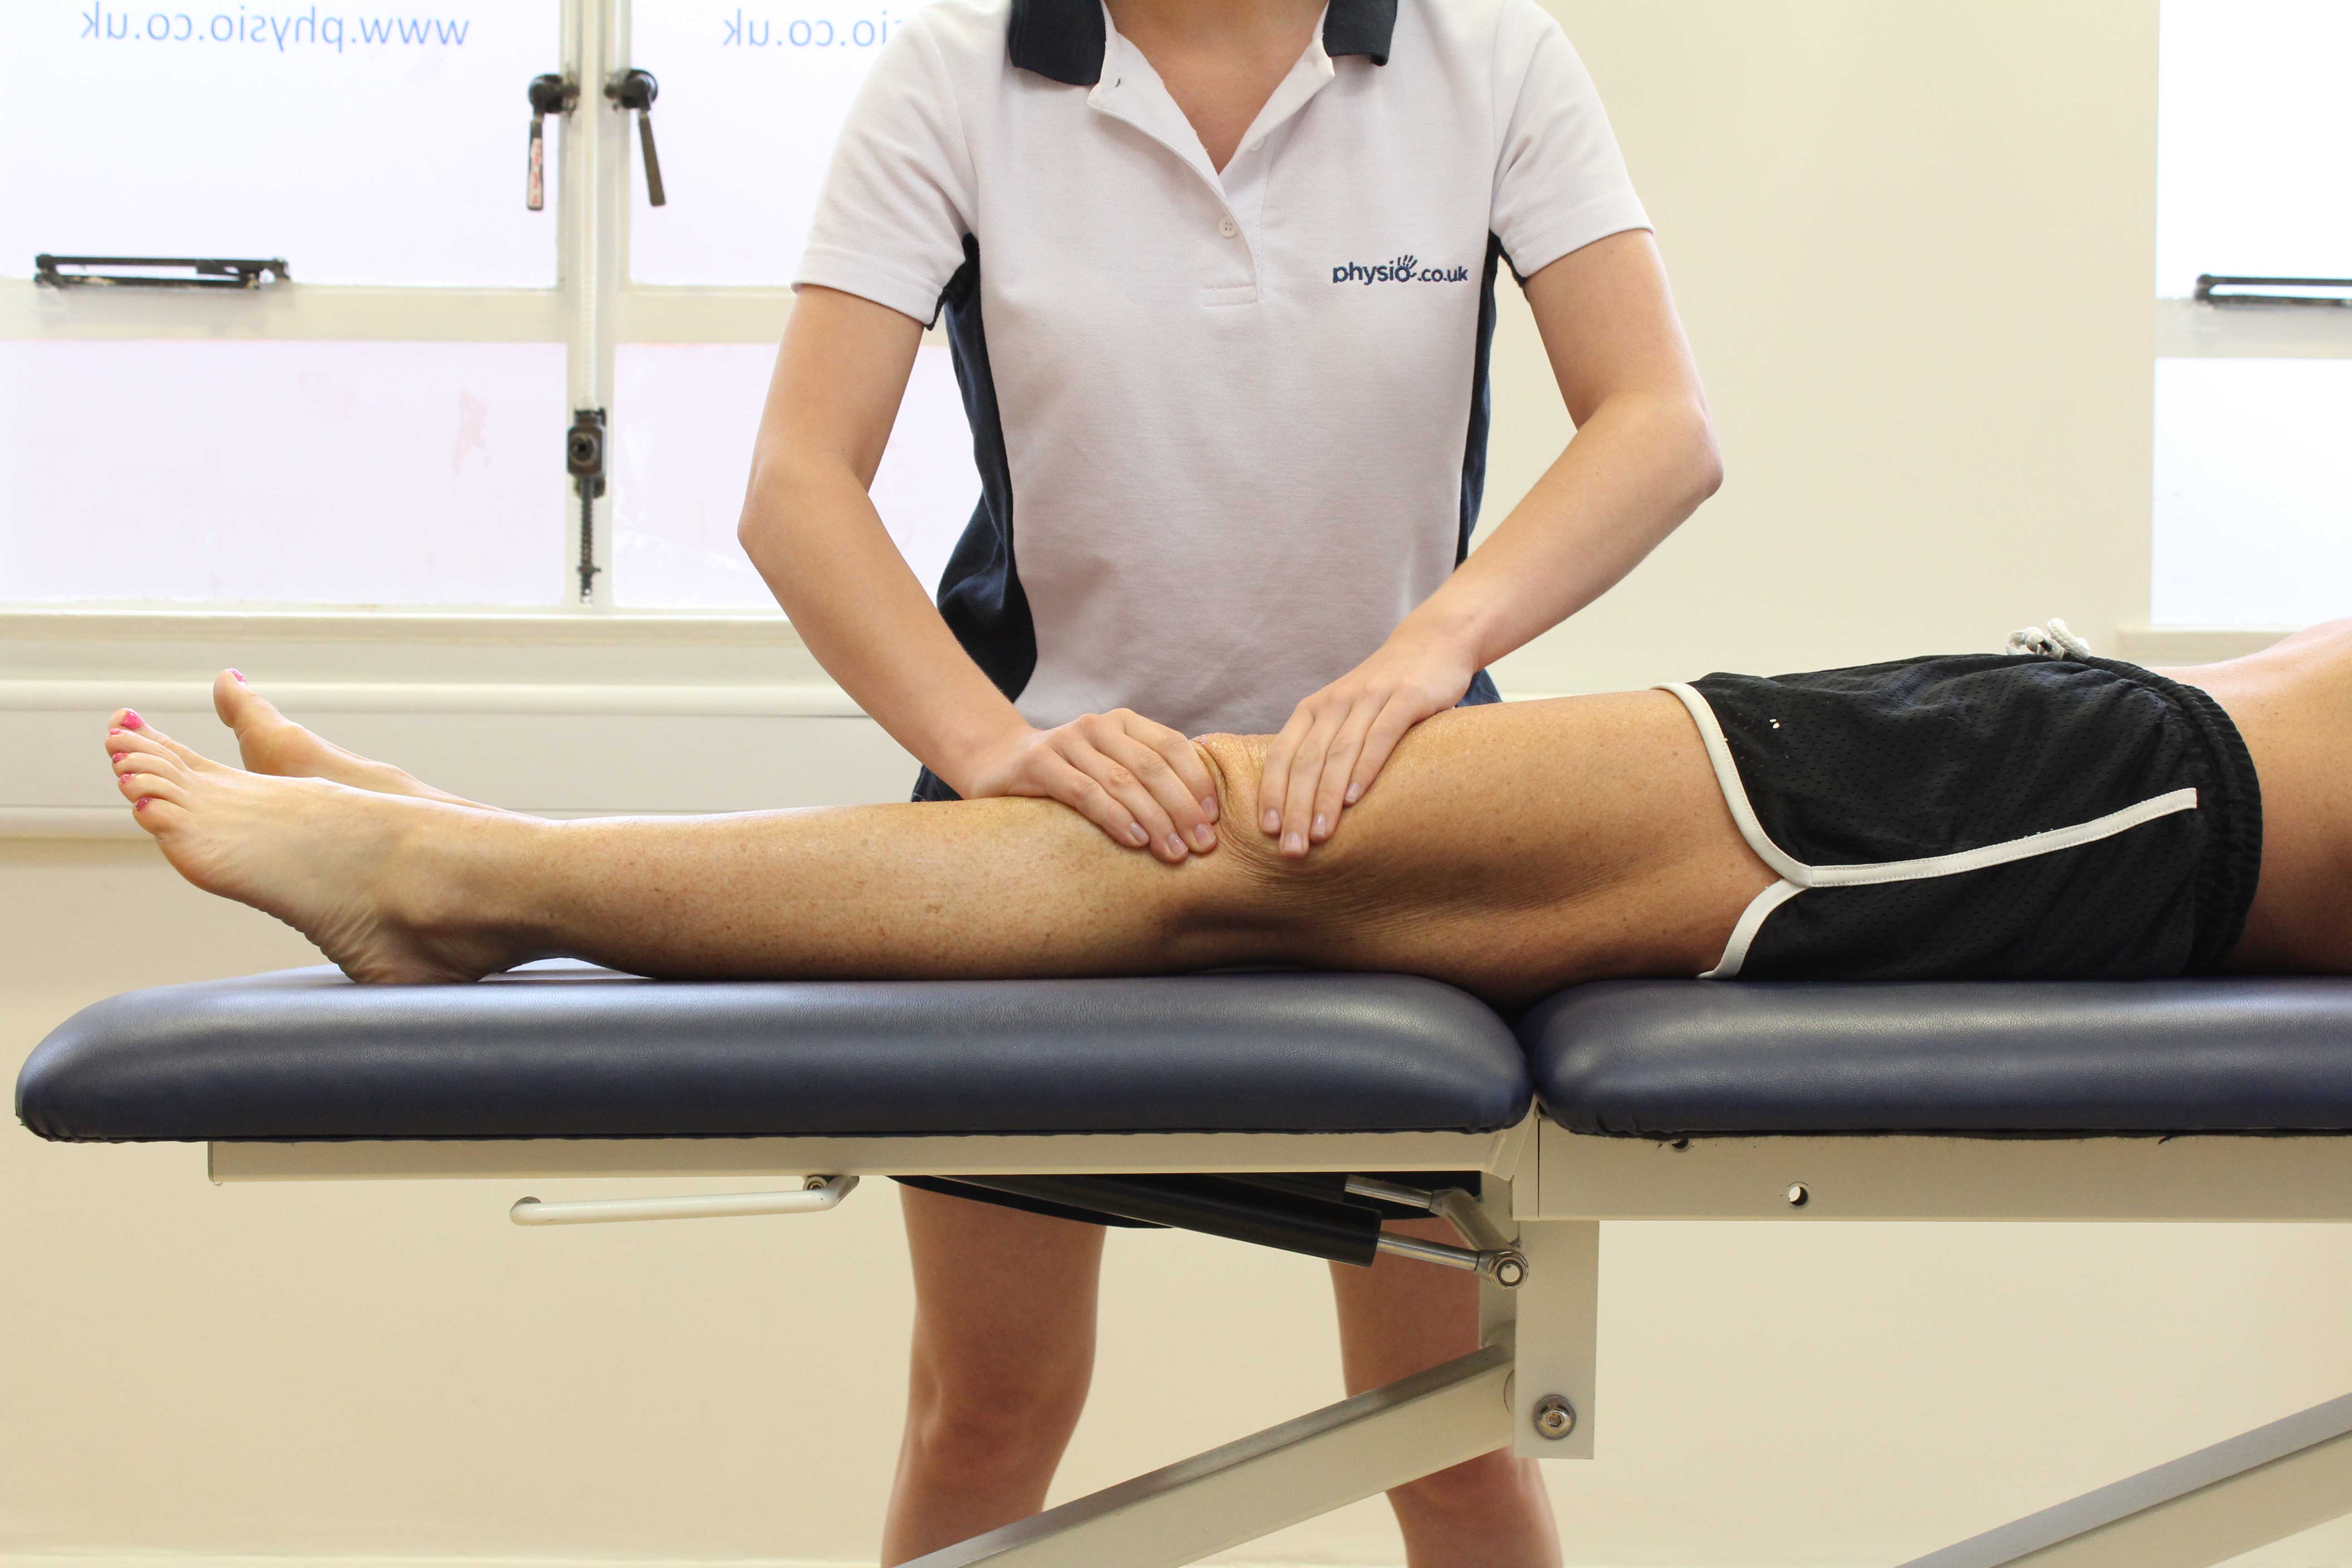 Rolling massage technique applied to patella femoral joint to releive pain